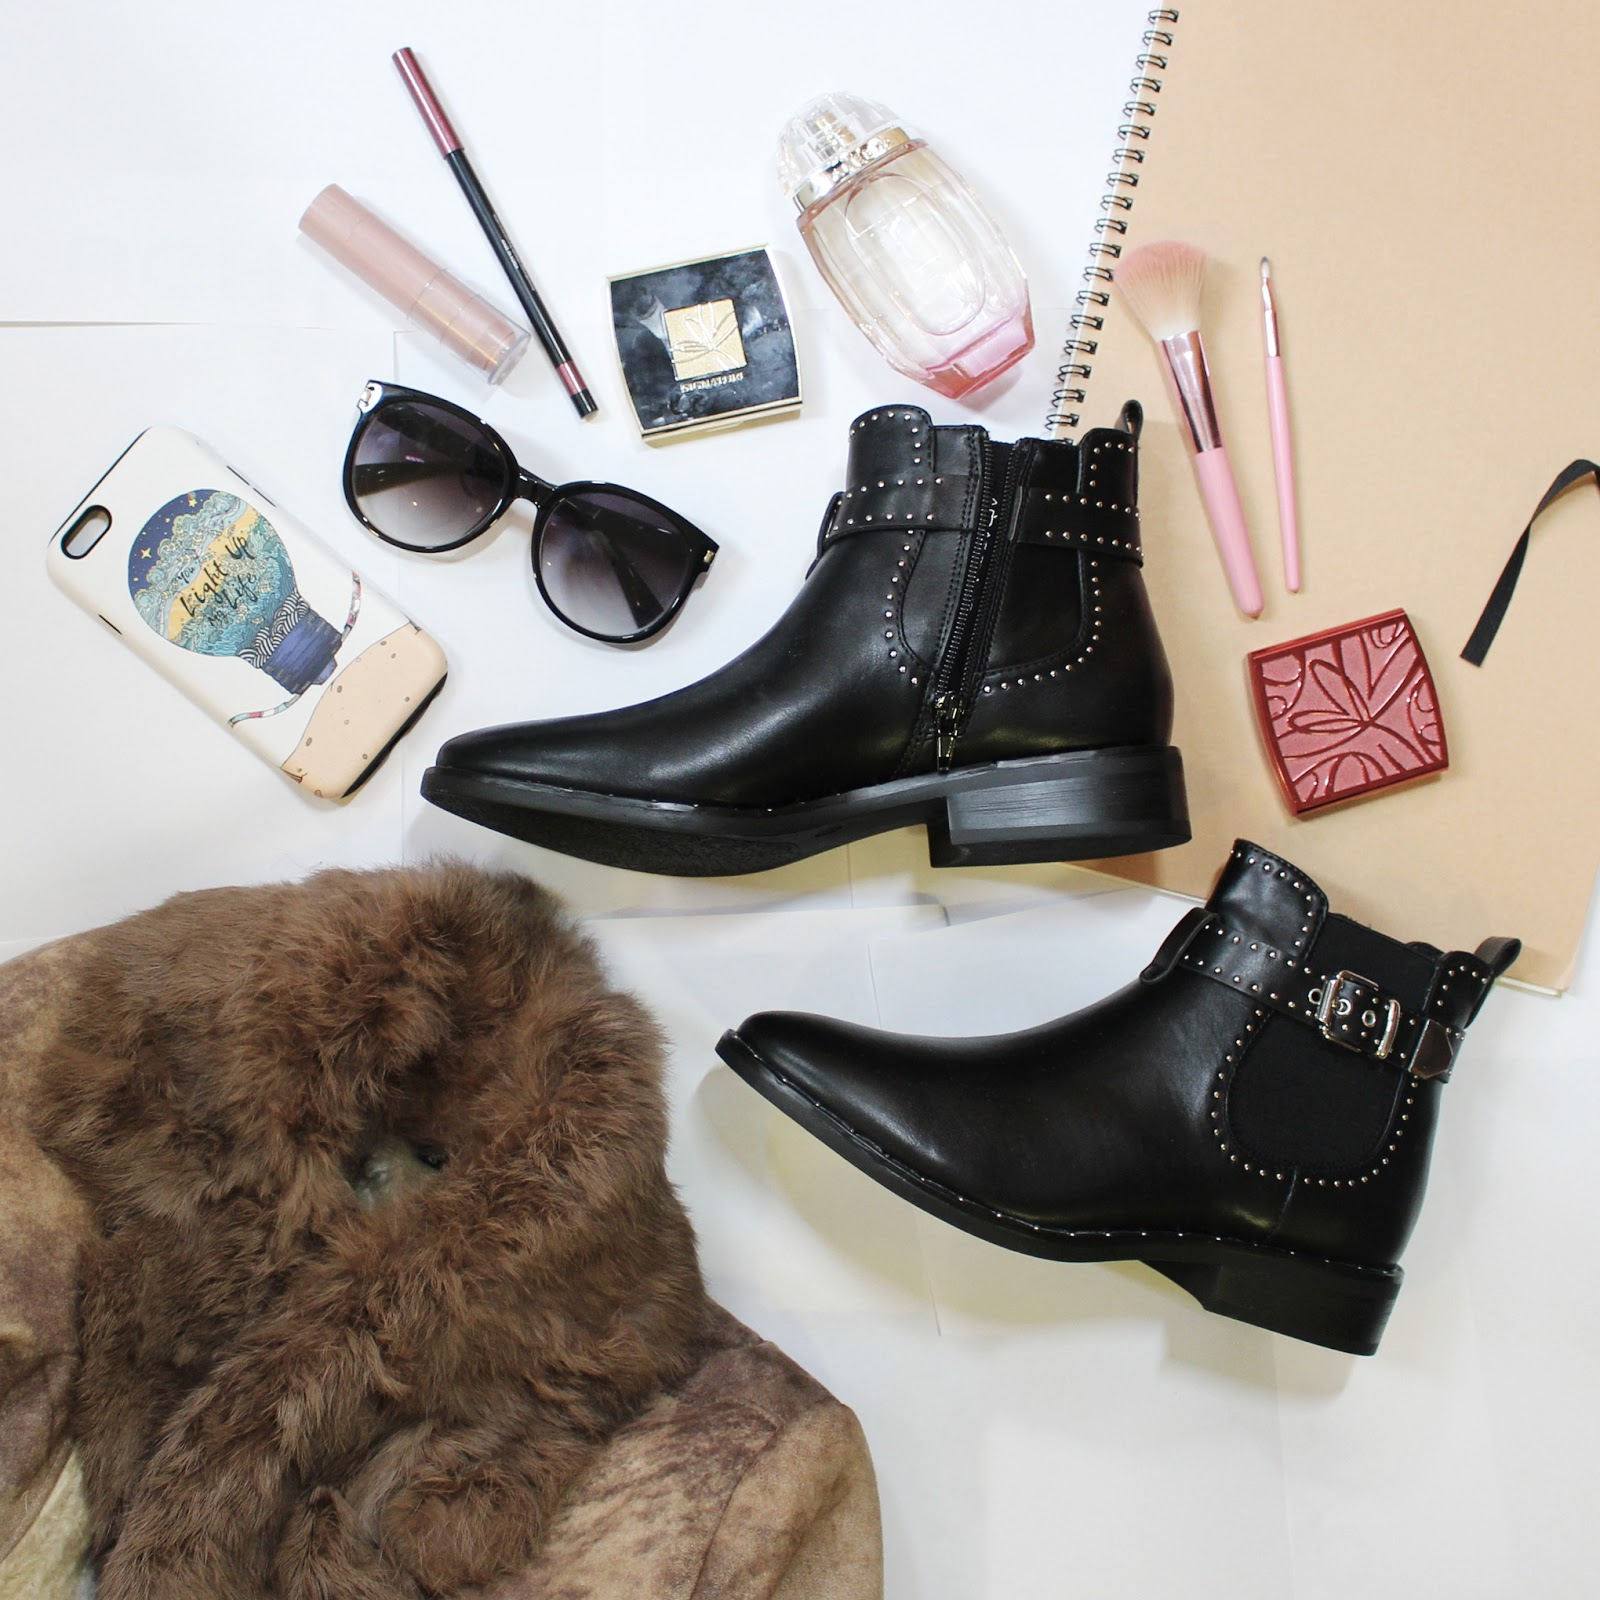 ee2d37942f5 fantail flo: Ellie Goulding AW17 Deichmann Collection- a first look ...